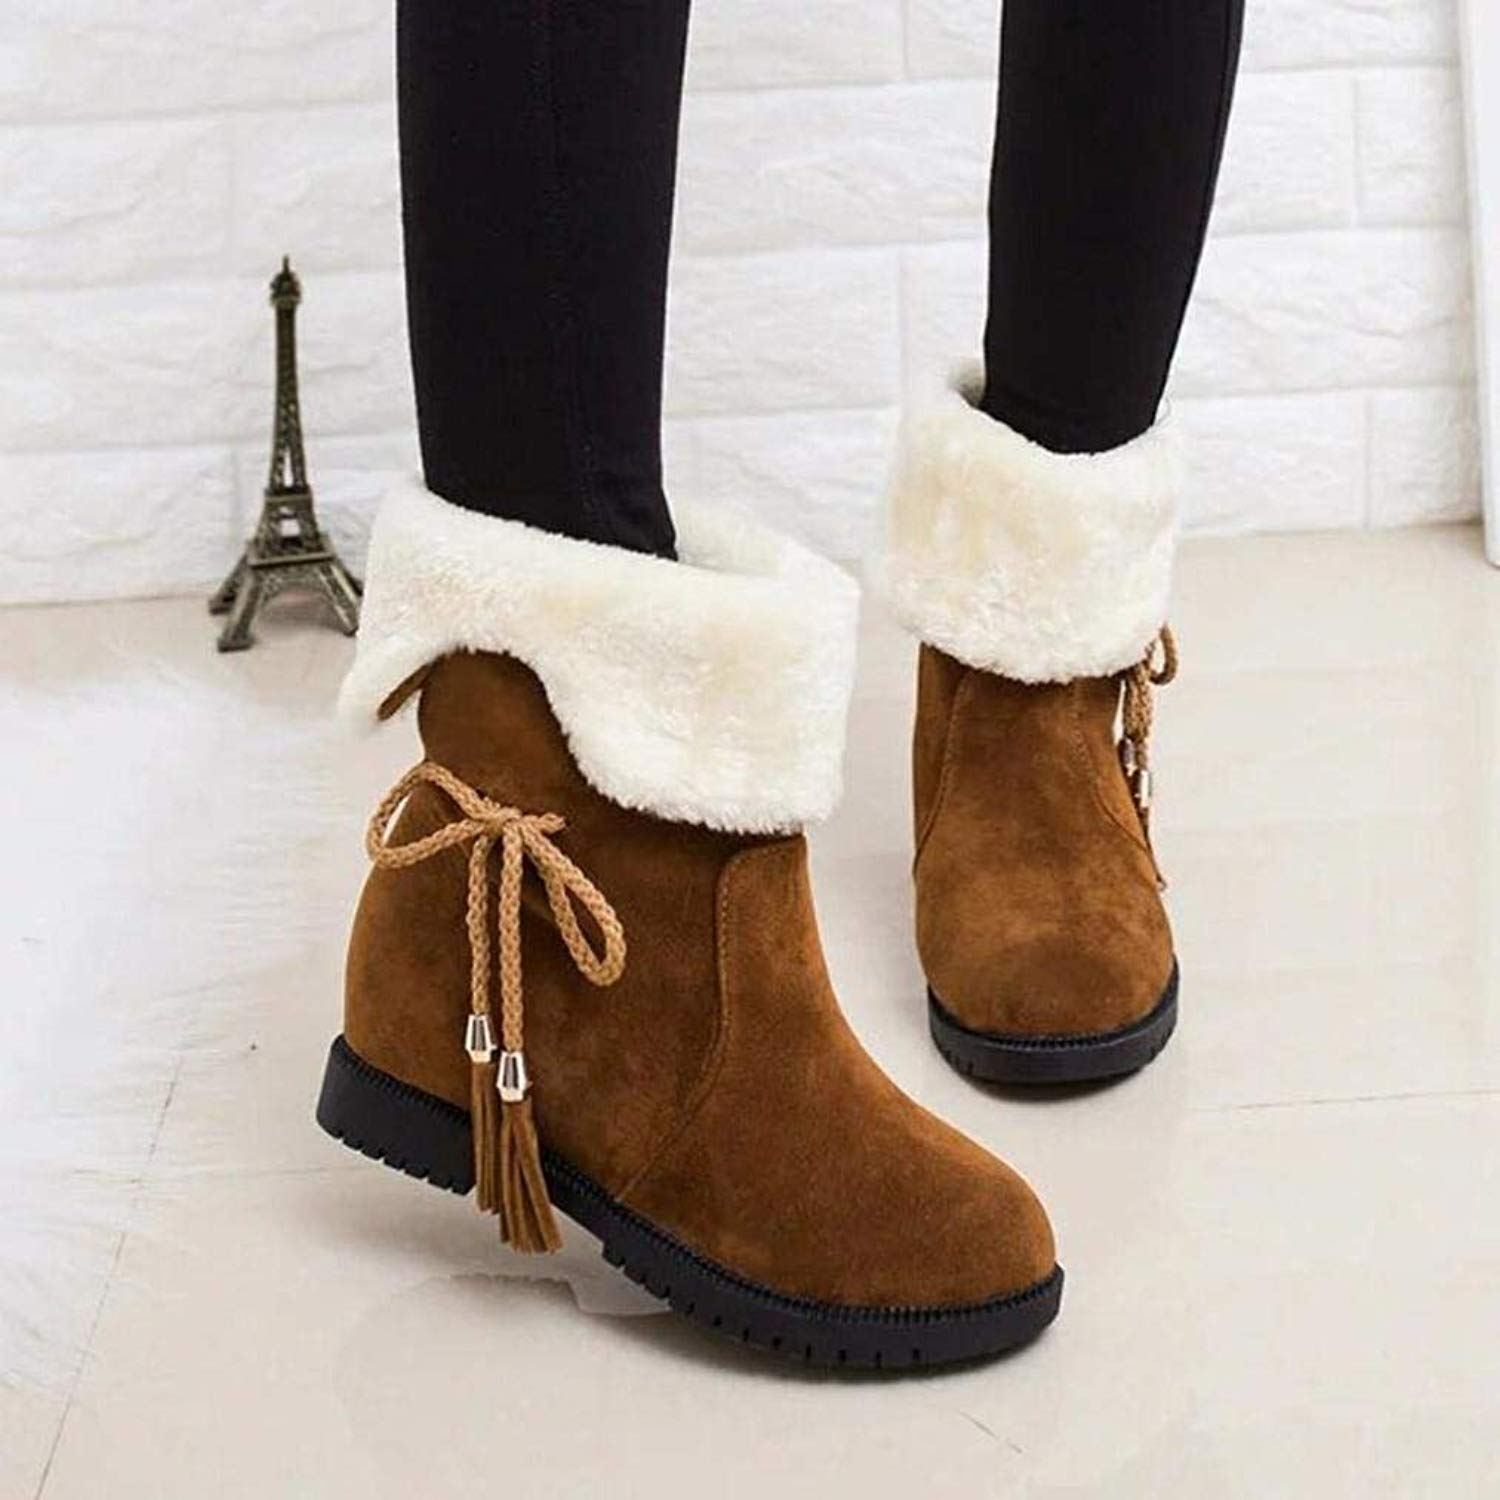 6dd63c9d5f Get Quotations · Gyoume Women Snow Boots Winter Ankle Boots Women Shoes  Heels Boot Shoes Warm Boots